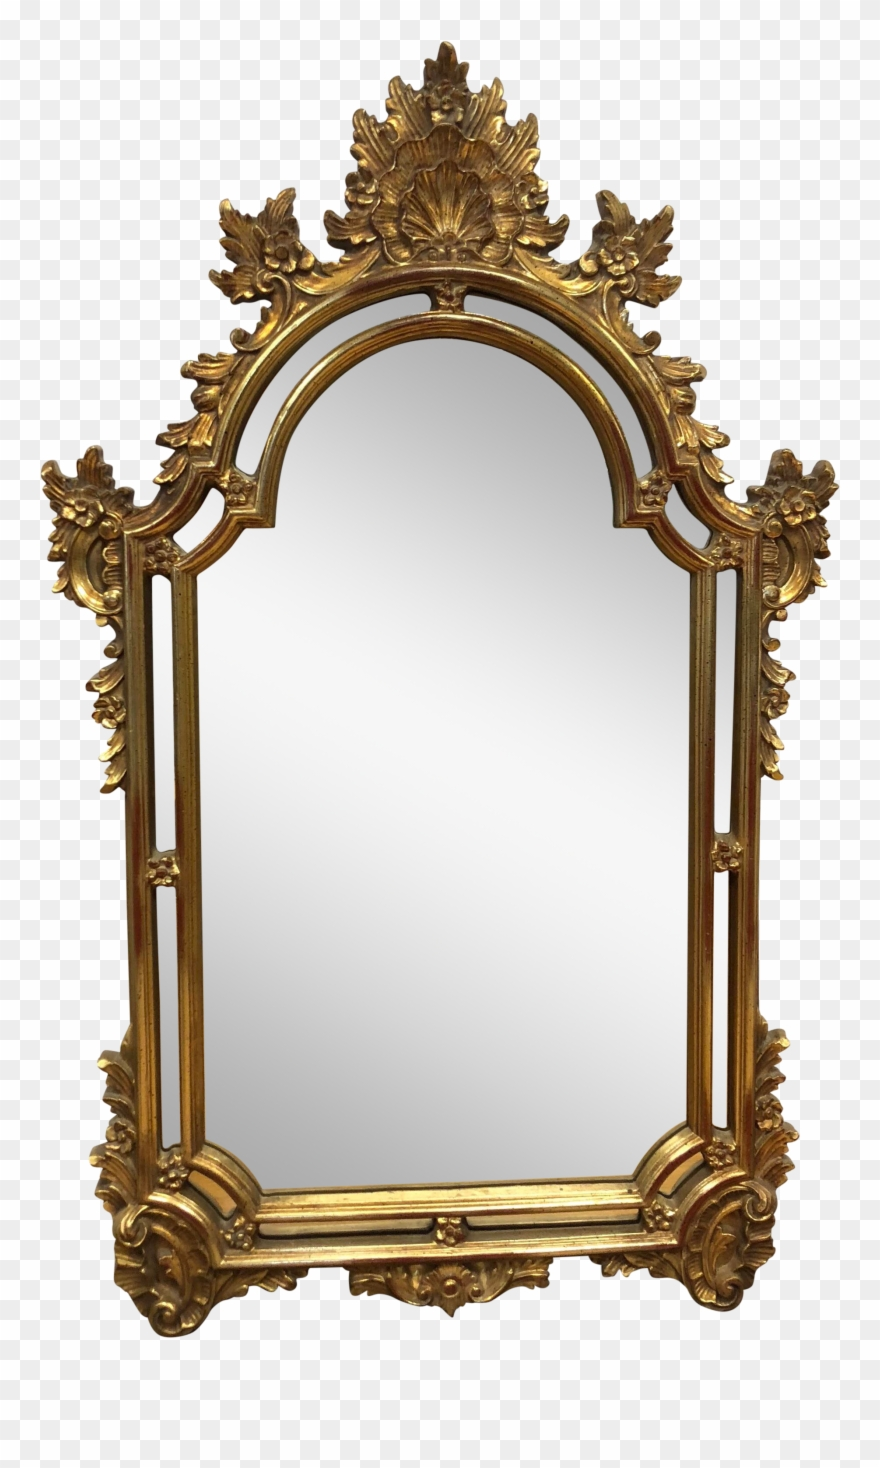 Mirror clipart wall mirror. Gold leaf pinclipart